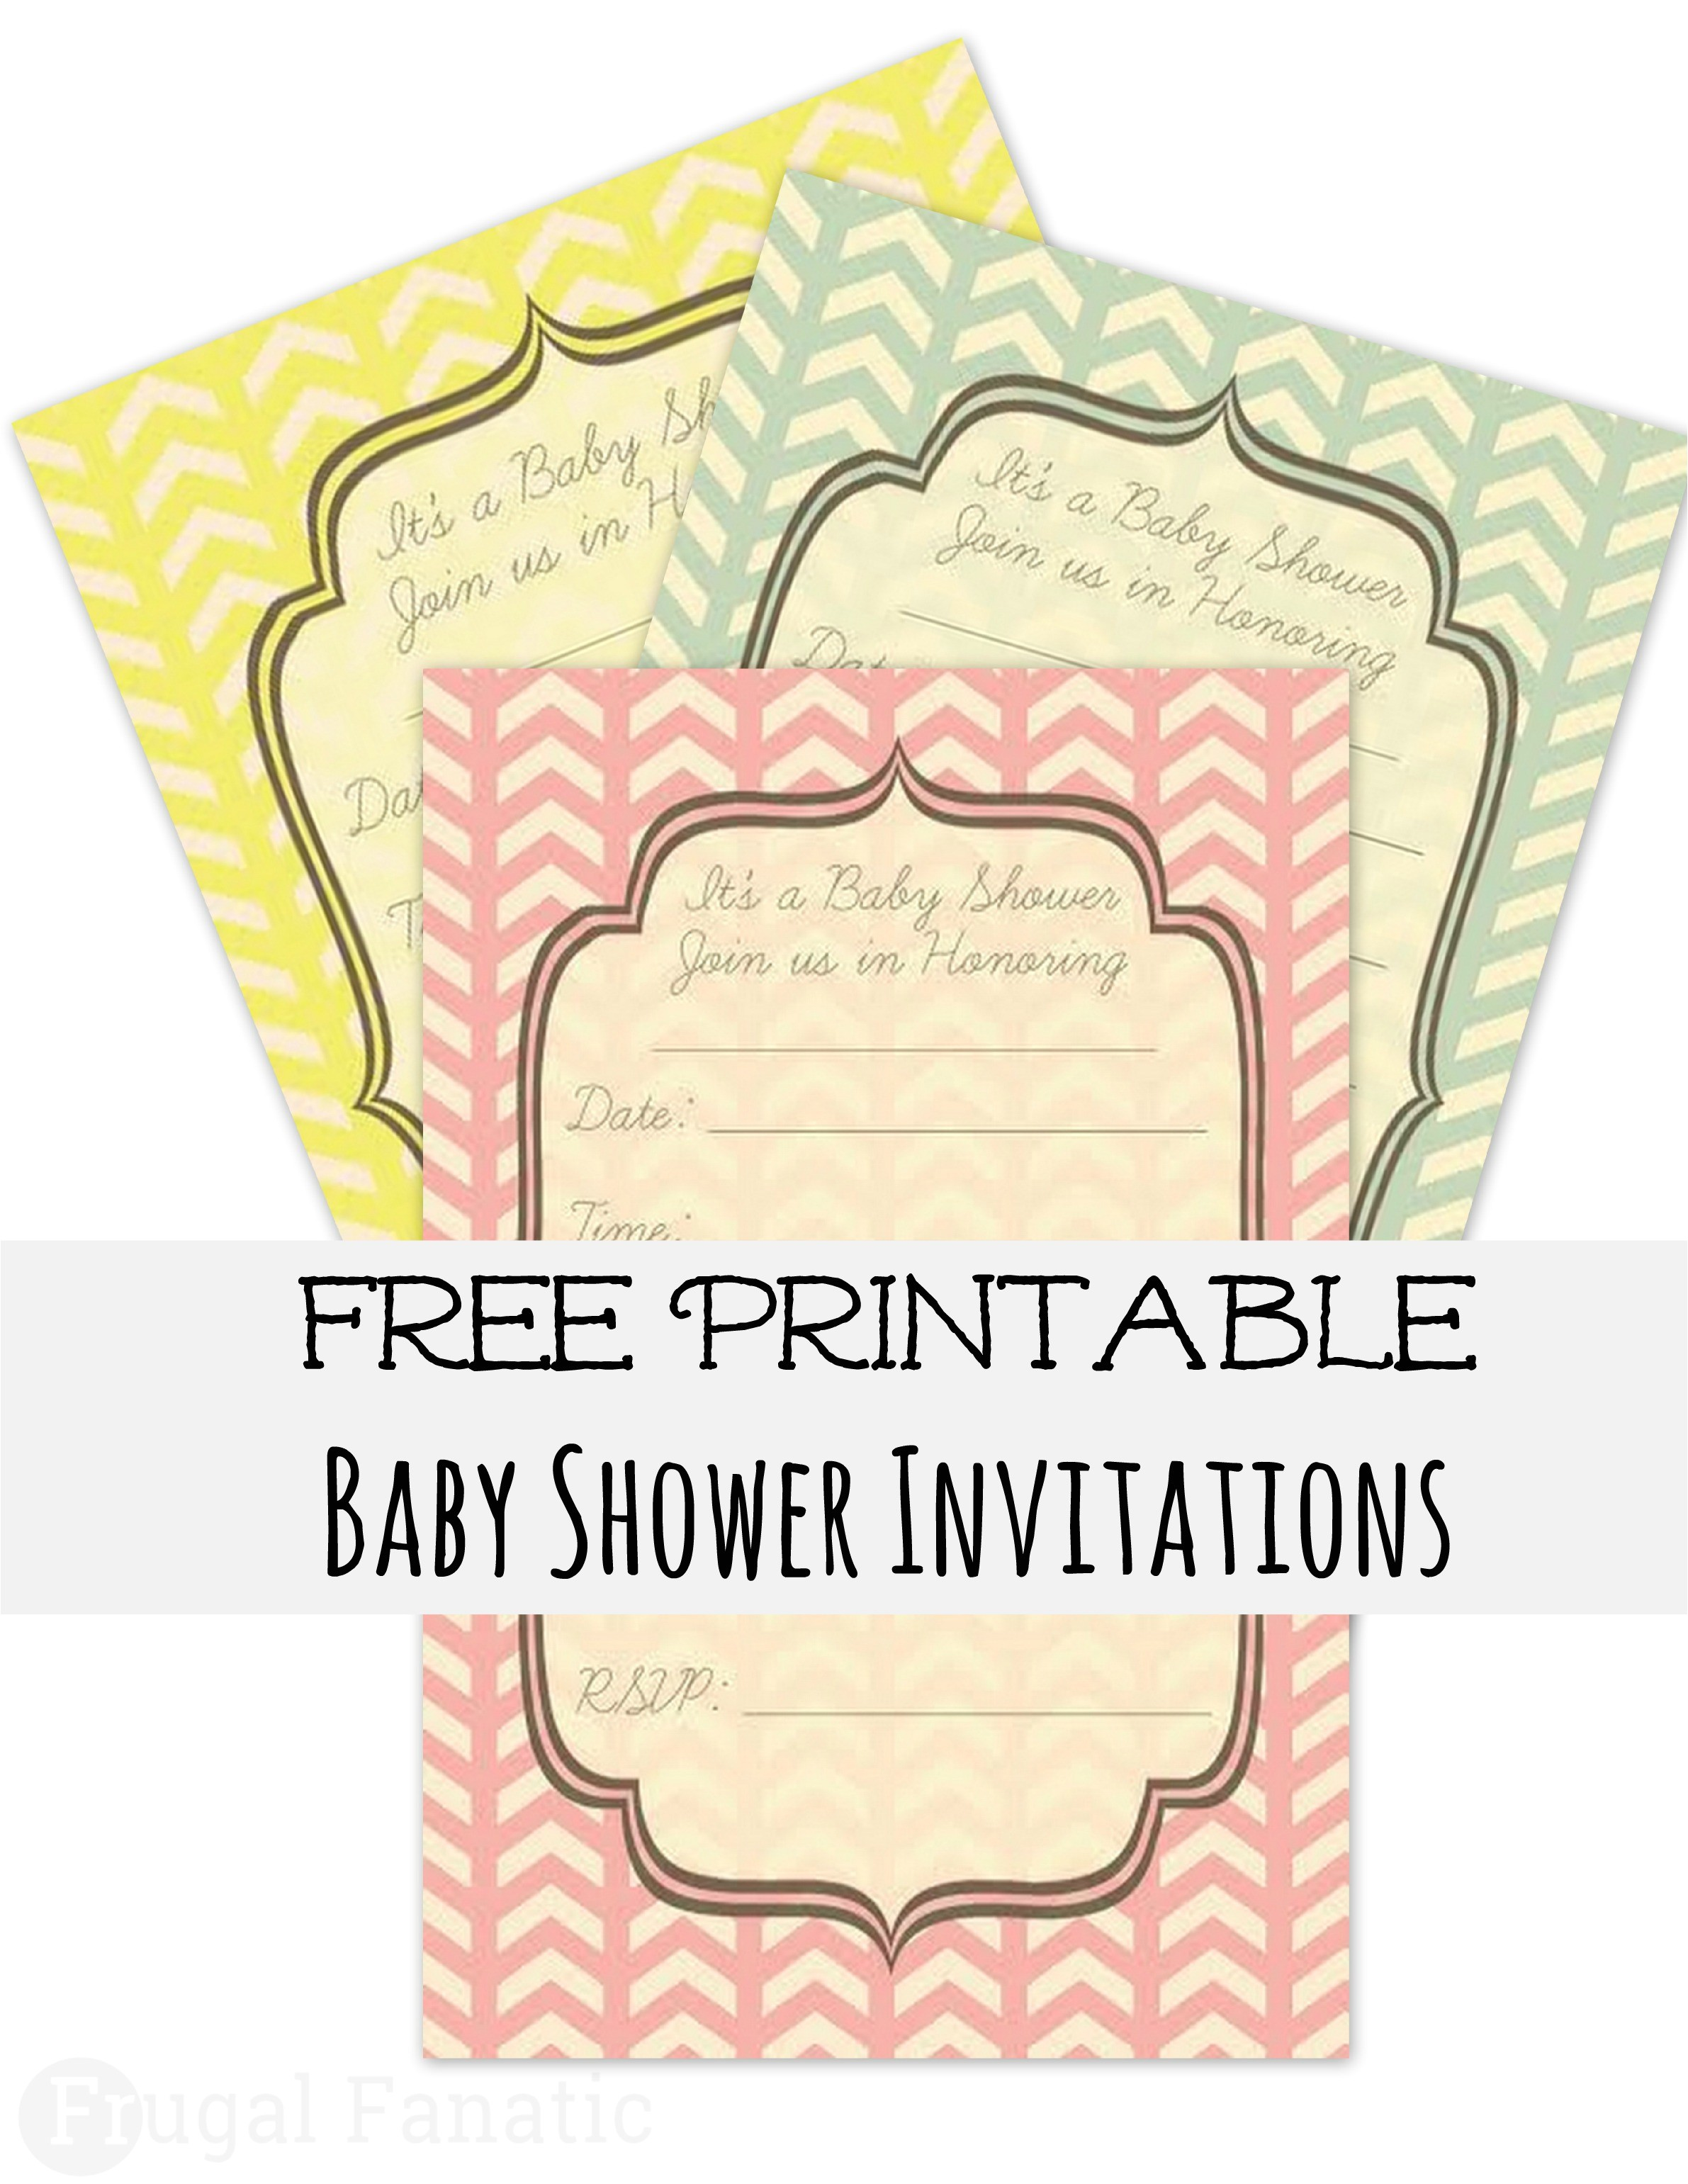 Make Baby Shower Invitations Online for Free Baby Shower Invitations Create Your Own Free